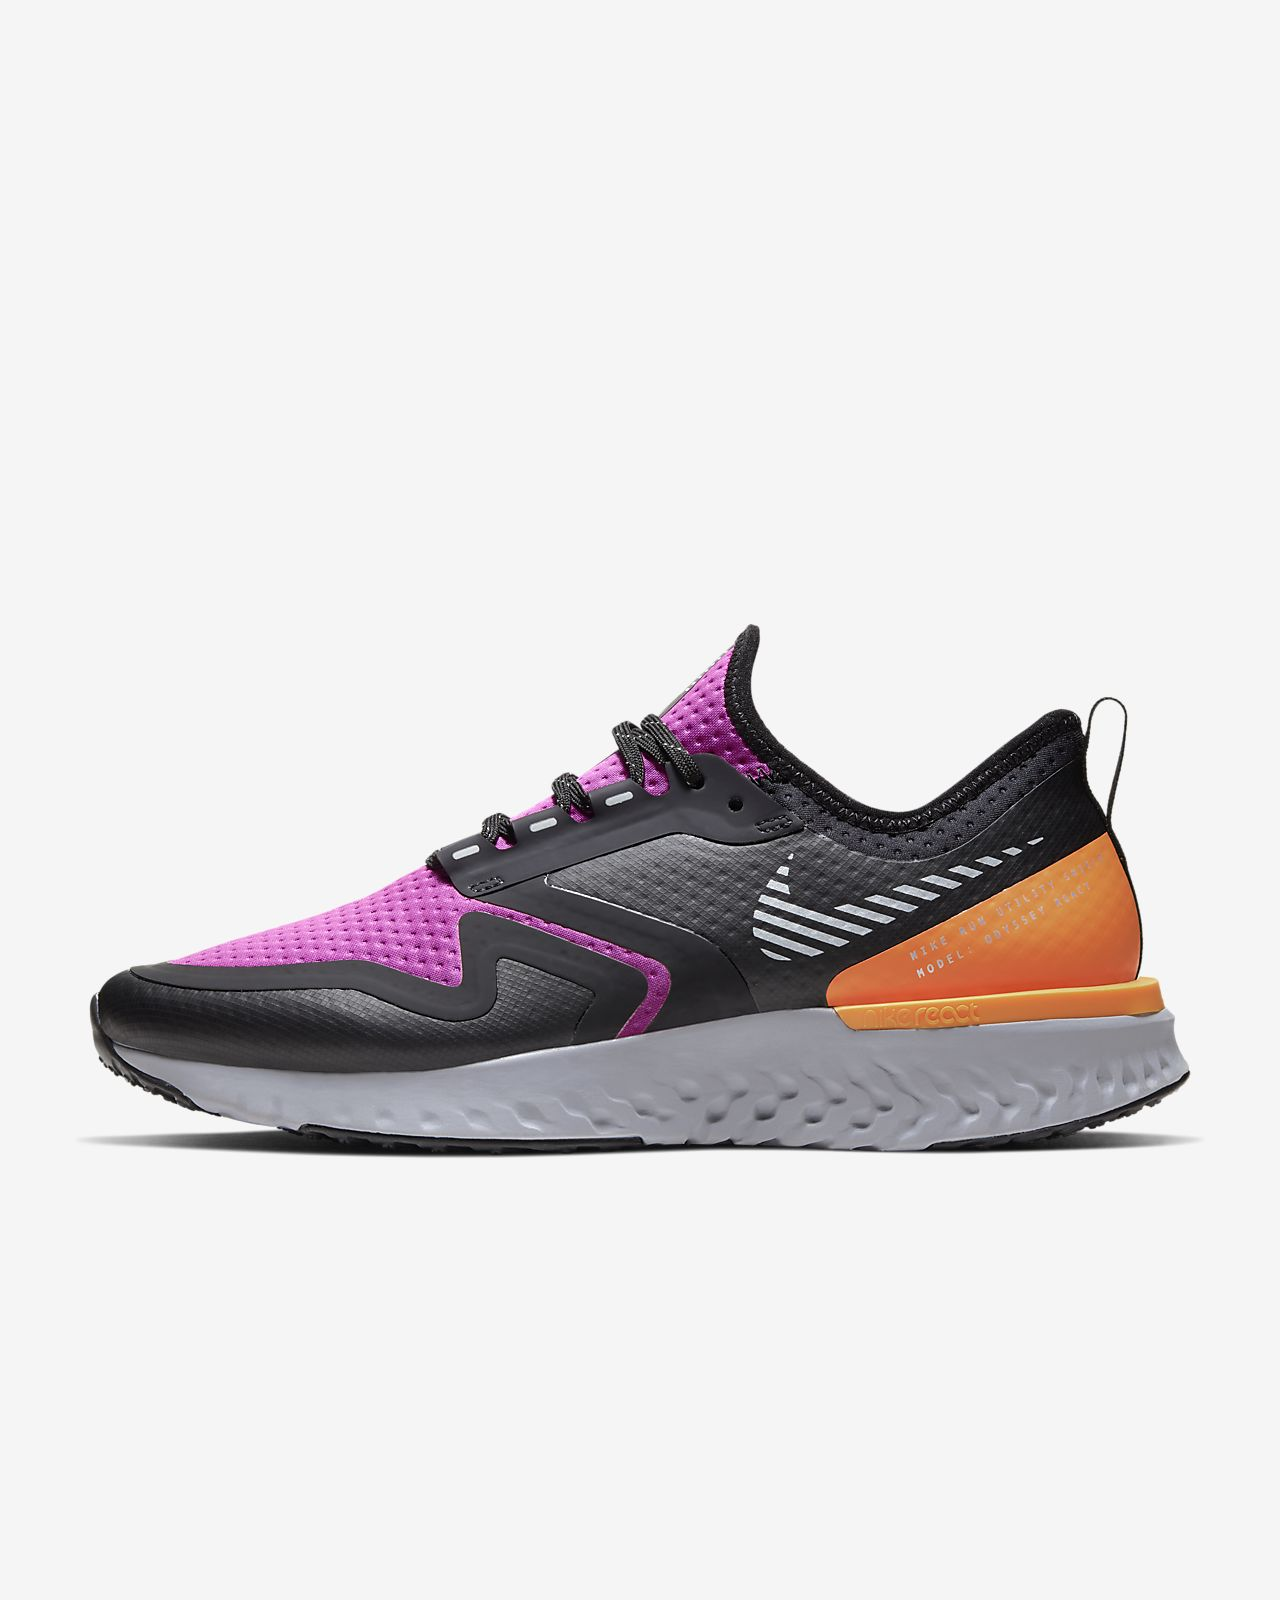 Nike Odyssey React 2 Shield 女子跑步鞋